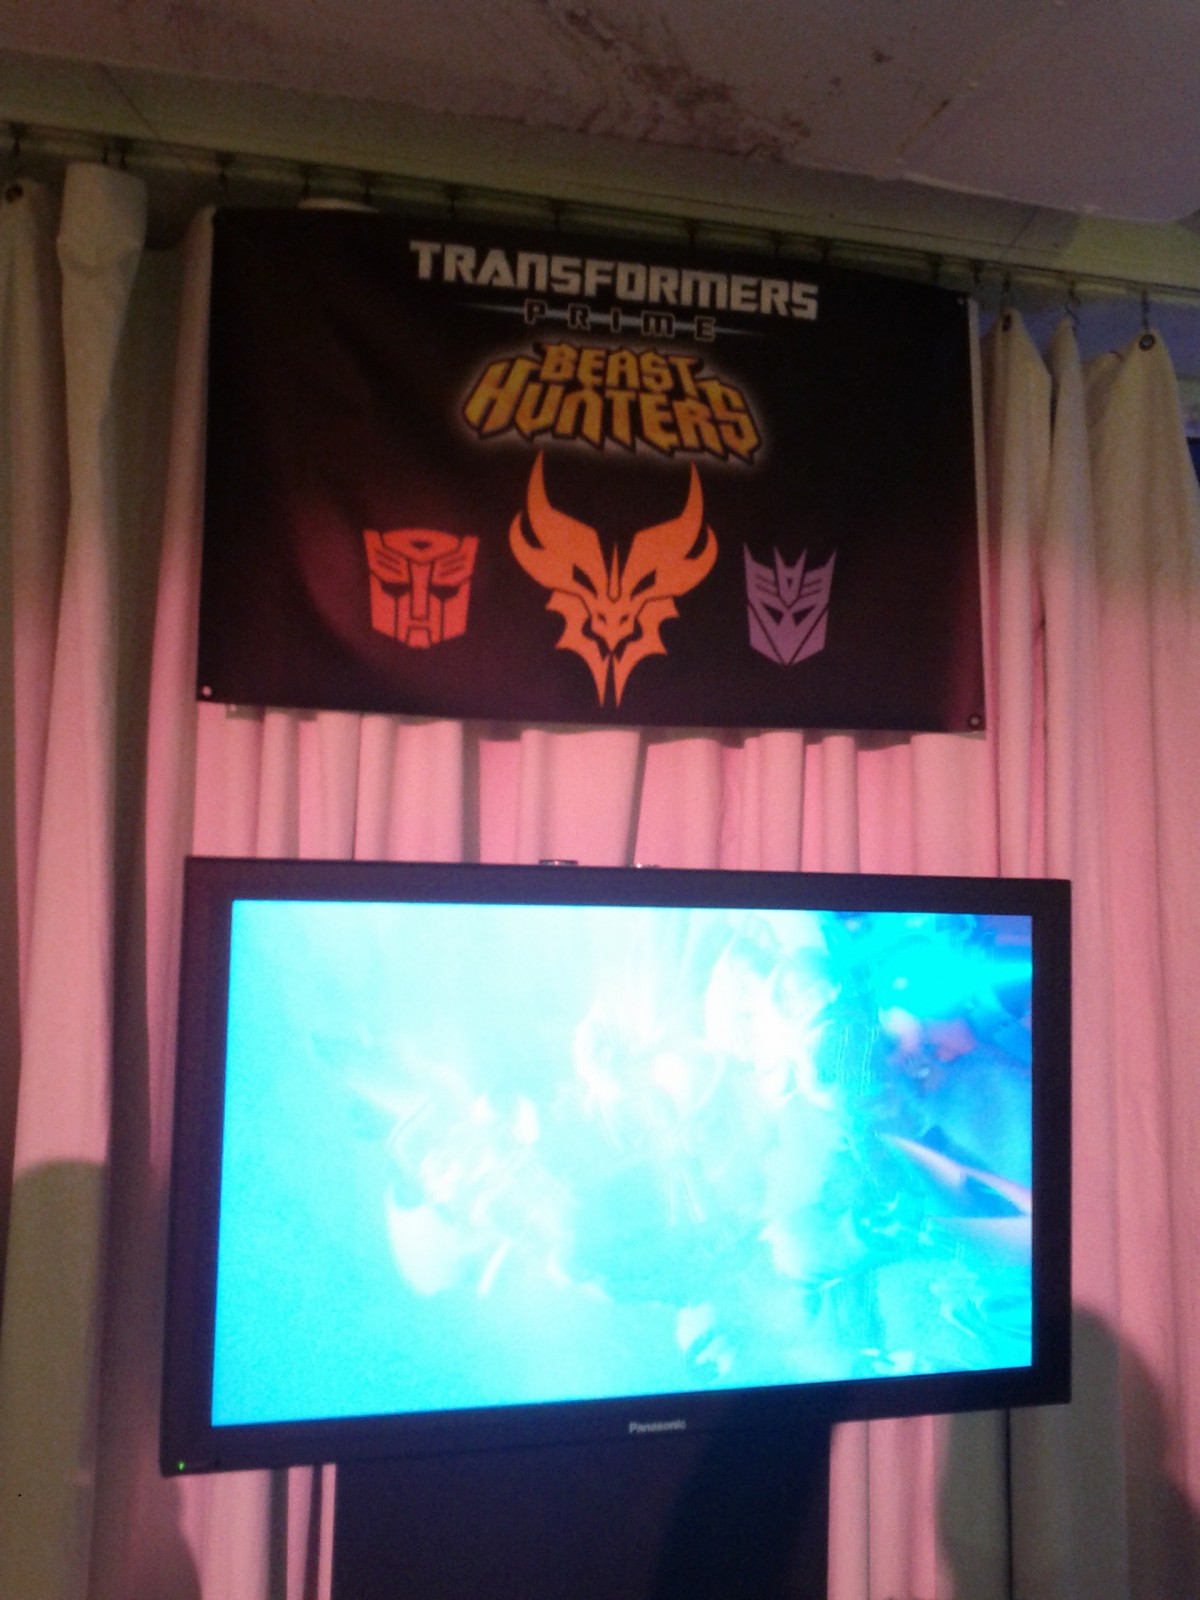 NYCC 2012 Coverage Continues: Predacon Faction Revealed!